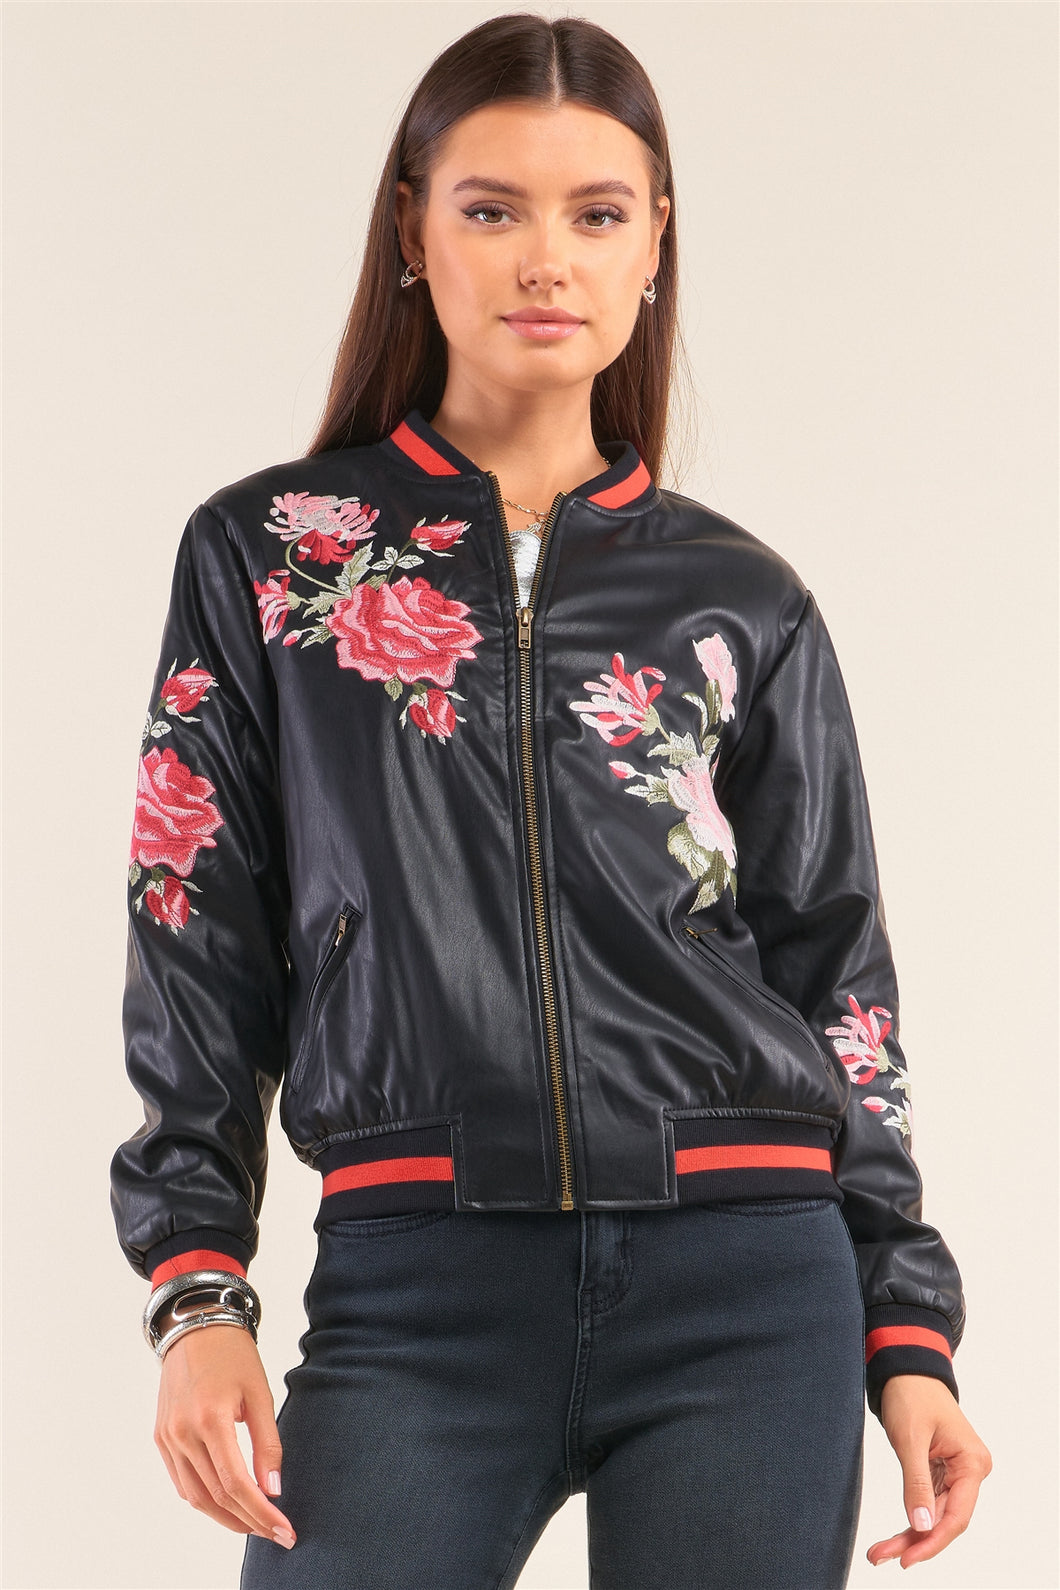 Rosa Black Vegan Leather Floral Embroidery Striped Hem Bomber Jacket - Sensual Fashion Boutique